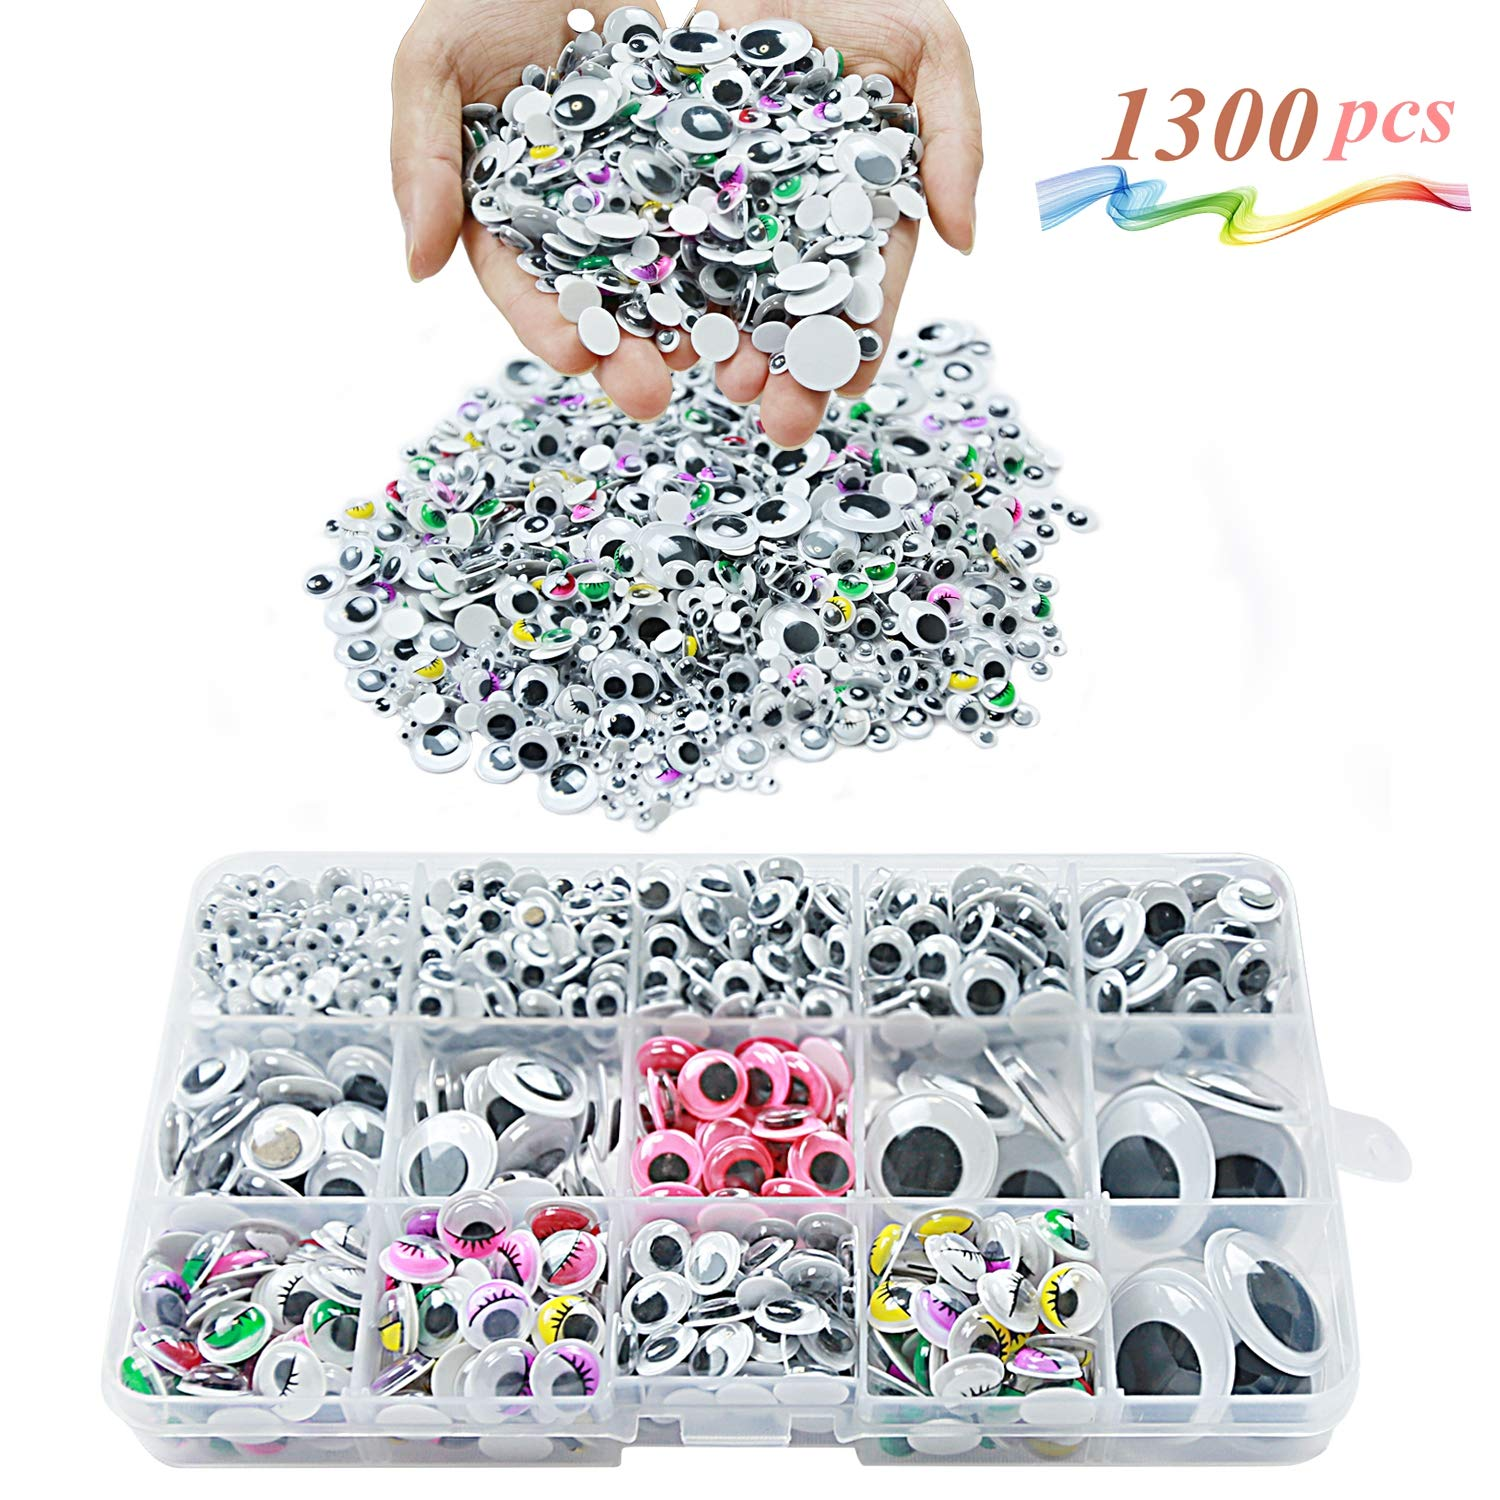 MOZOLAND Googly Wiggle Eyes 1300 Pcs Wiggle Eyes Self Adhesive for Craft Sticker Multiple Colored Size for DIY Animal Creative Crafts Decorations 4336856362